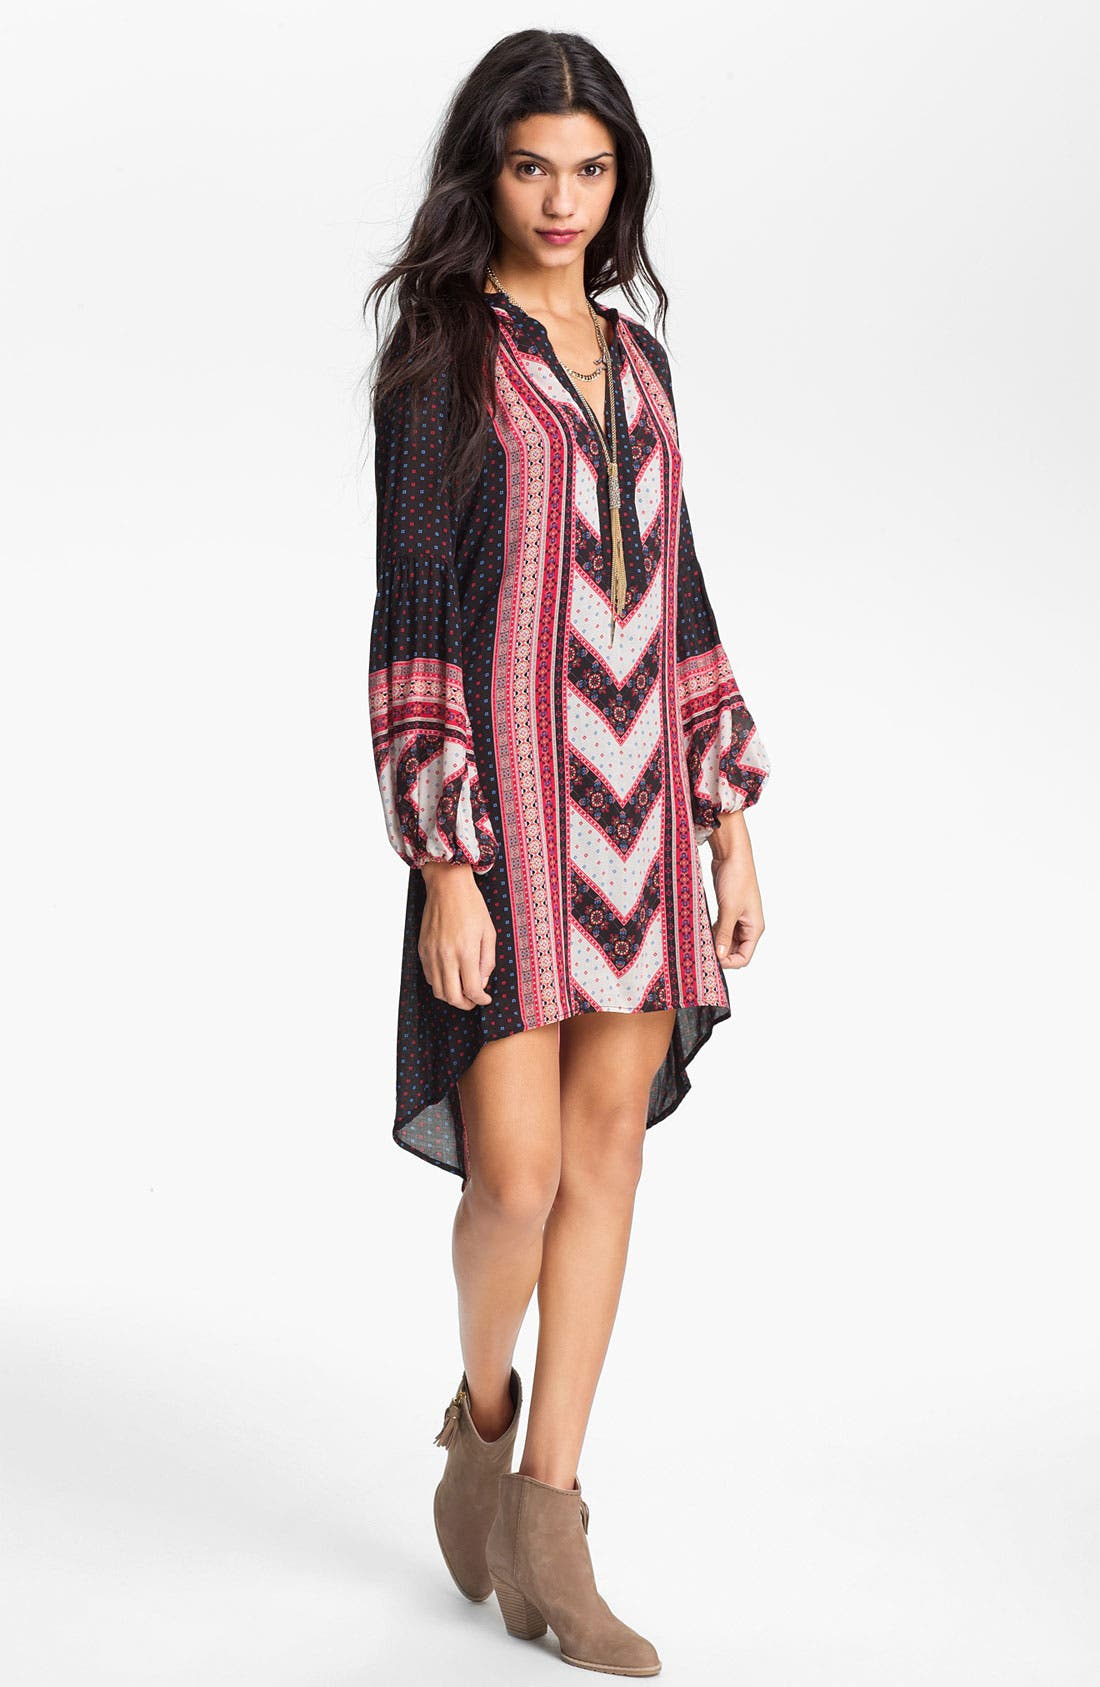 Alternate Image 1 Selected - Free People 'Peacemaker' Mix Print Peasant Dress